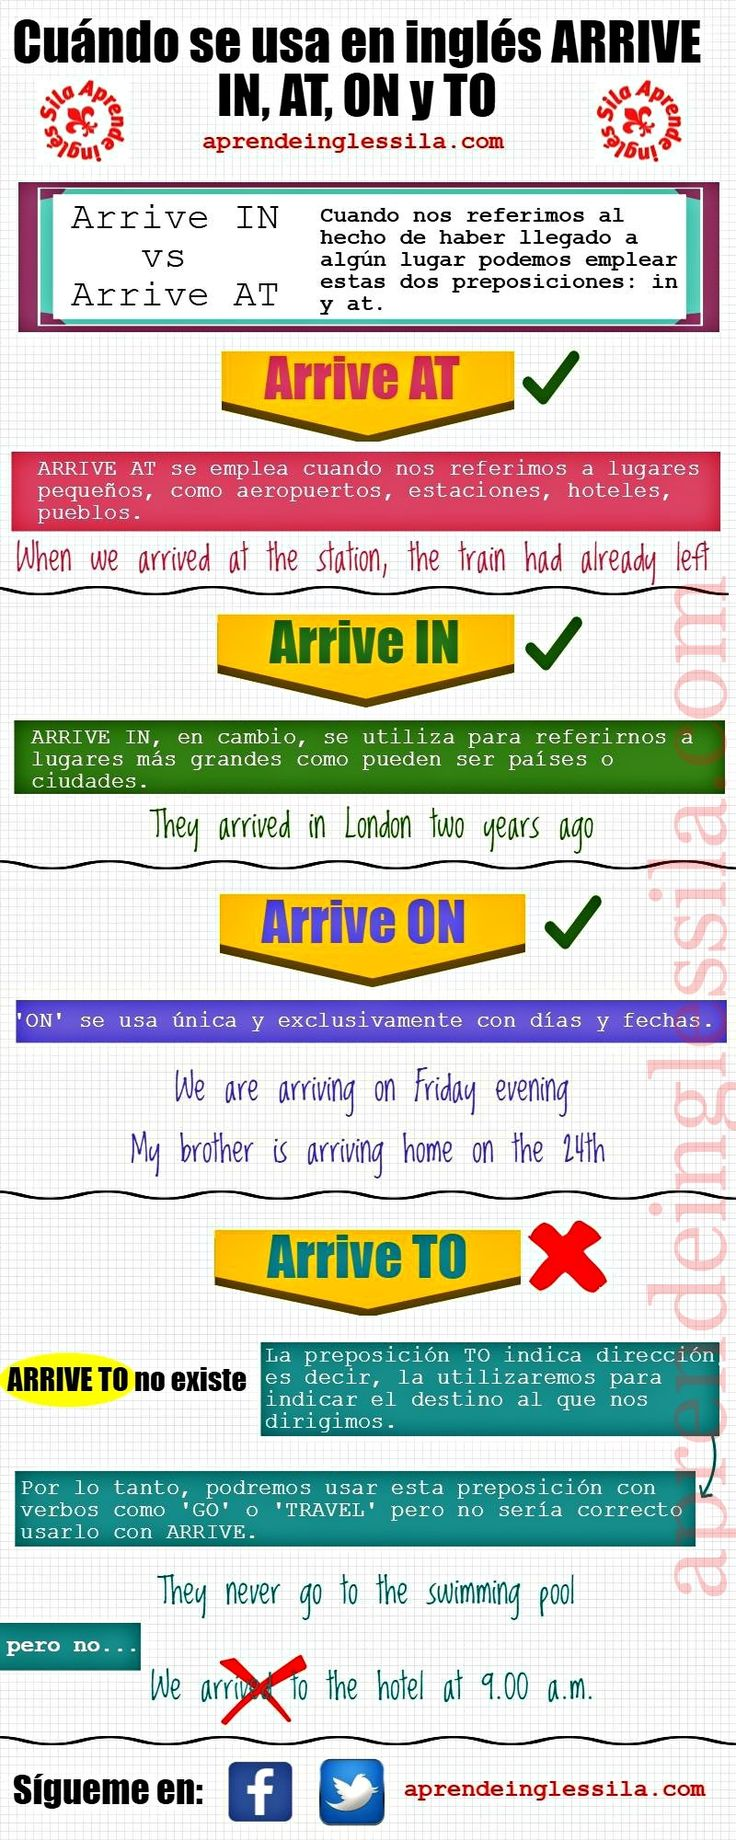 Uses of ARRIVE IN, AT, IN, TO #English